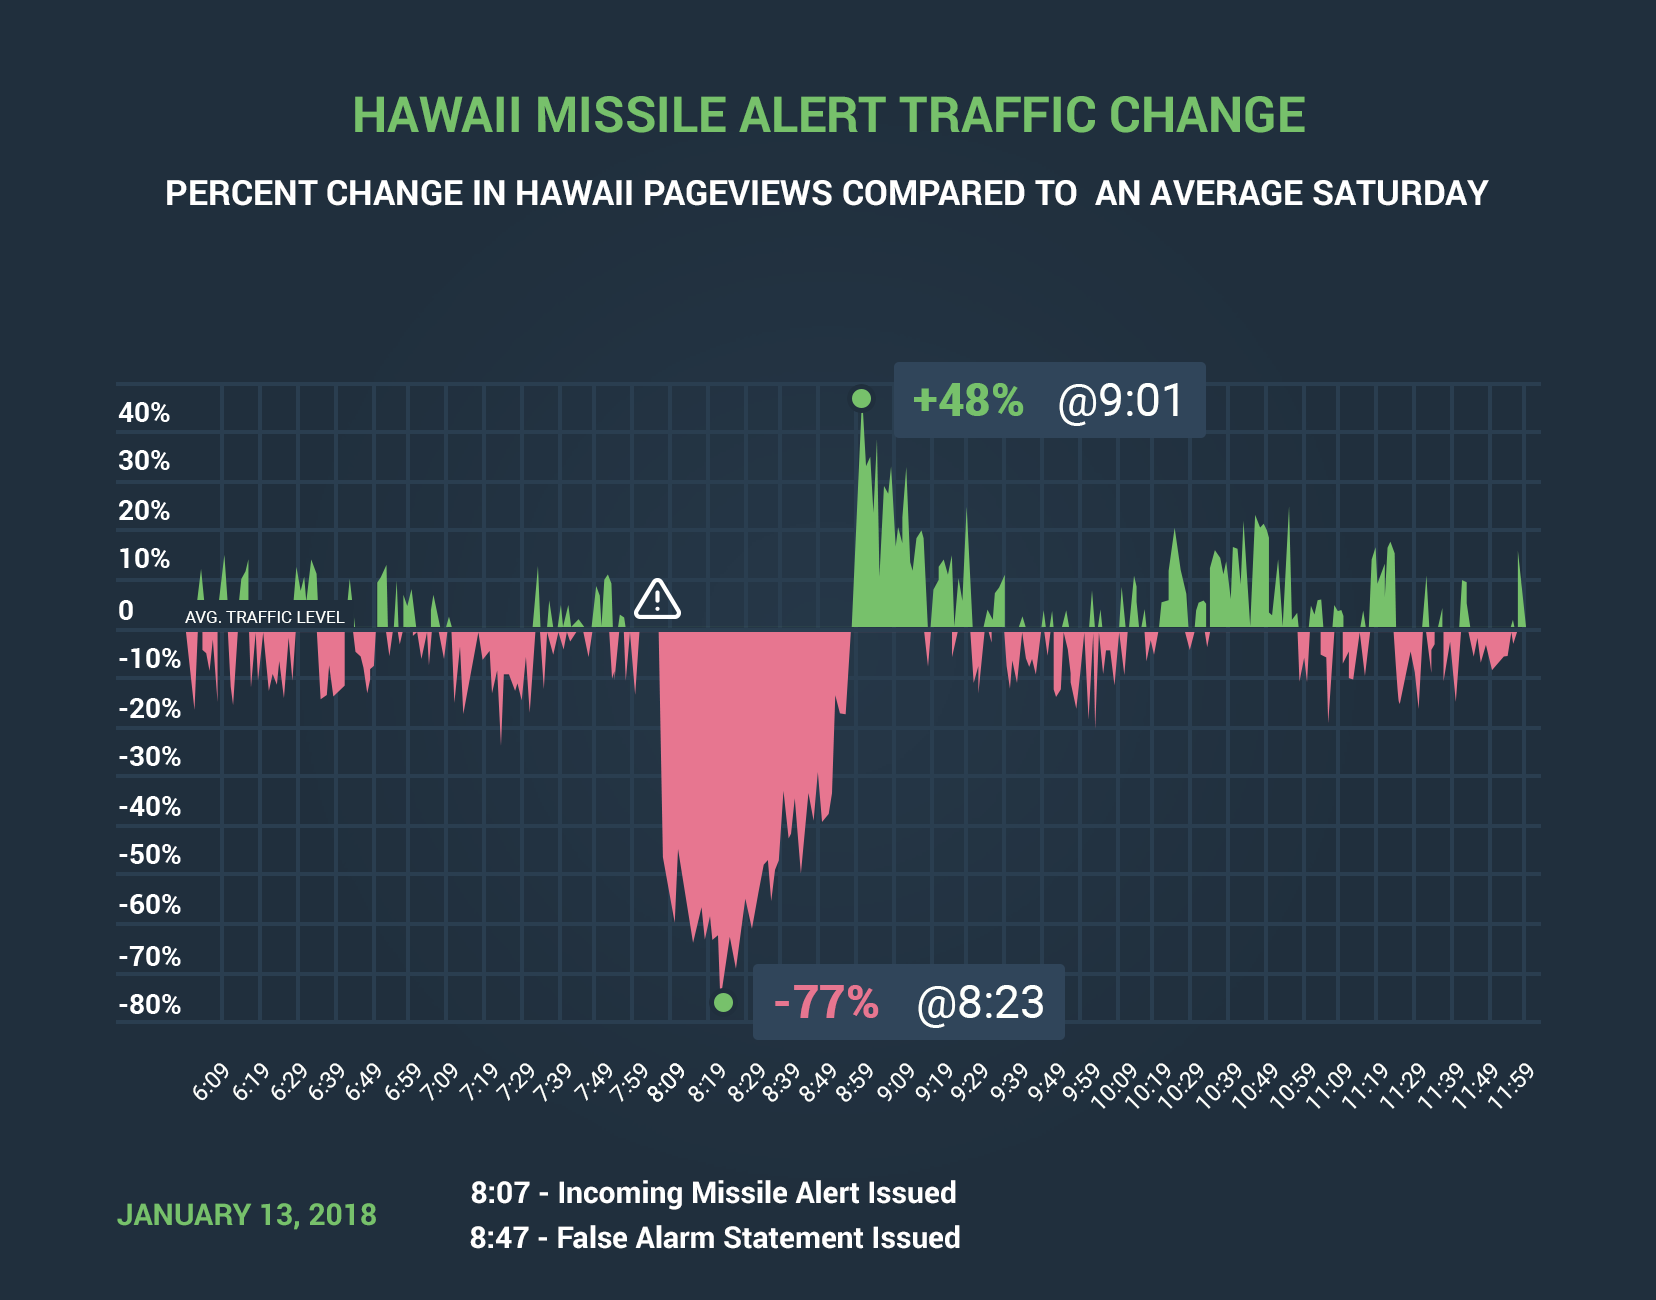 Hawaii missile alert traffic change